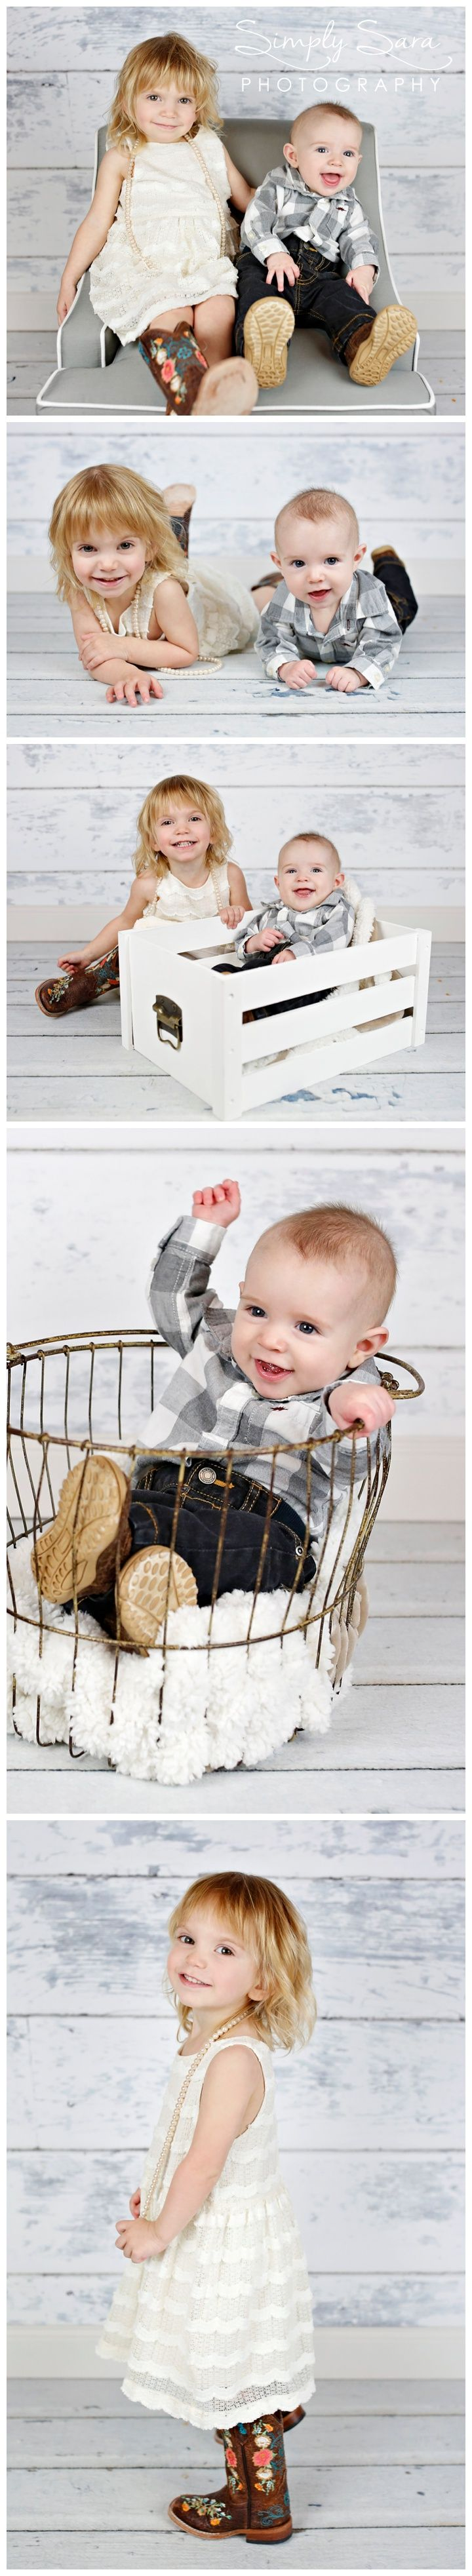 Indoor Family Photo Ideas Poses In A Home Studio 2 Year